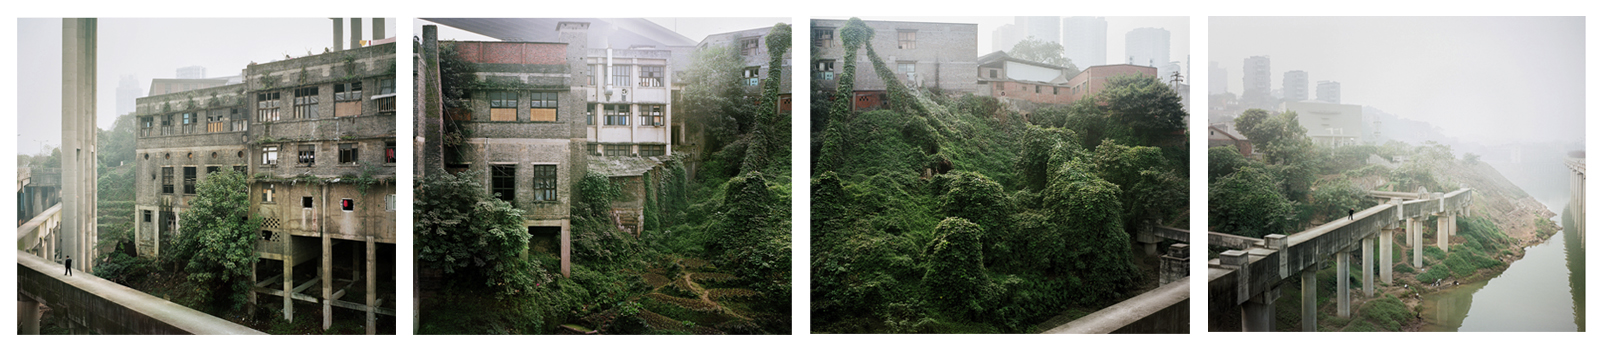 2011 © Alexander GRONSKY_Series Mountains & Waters_2011_Quadriptyque_05_